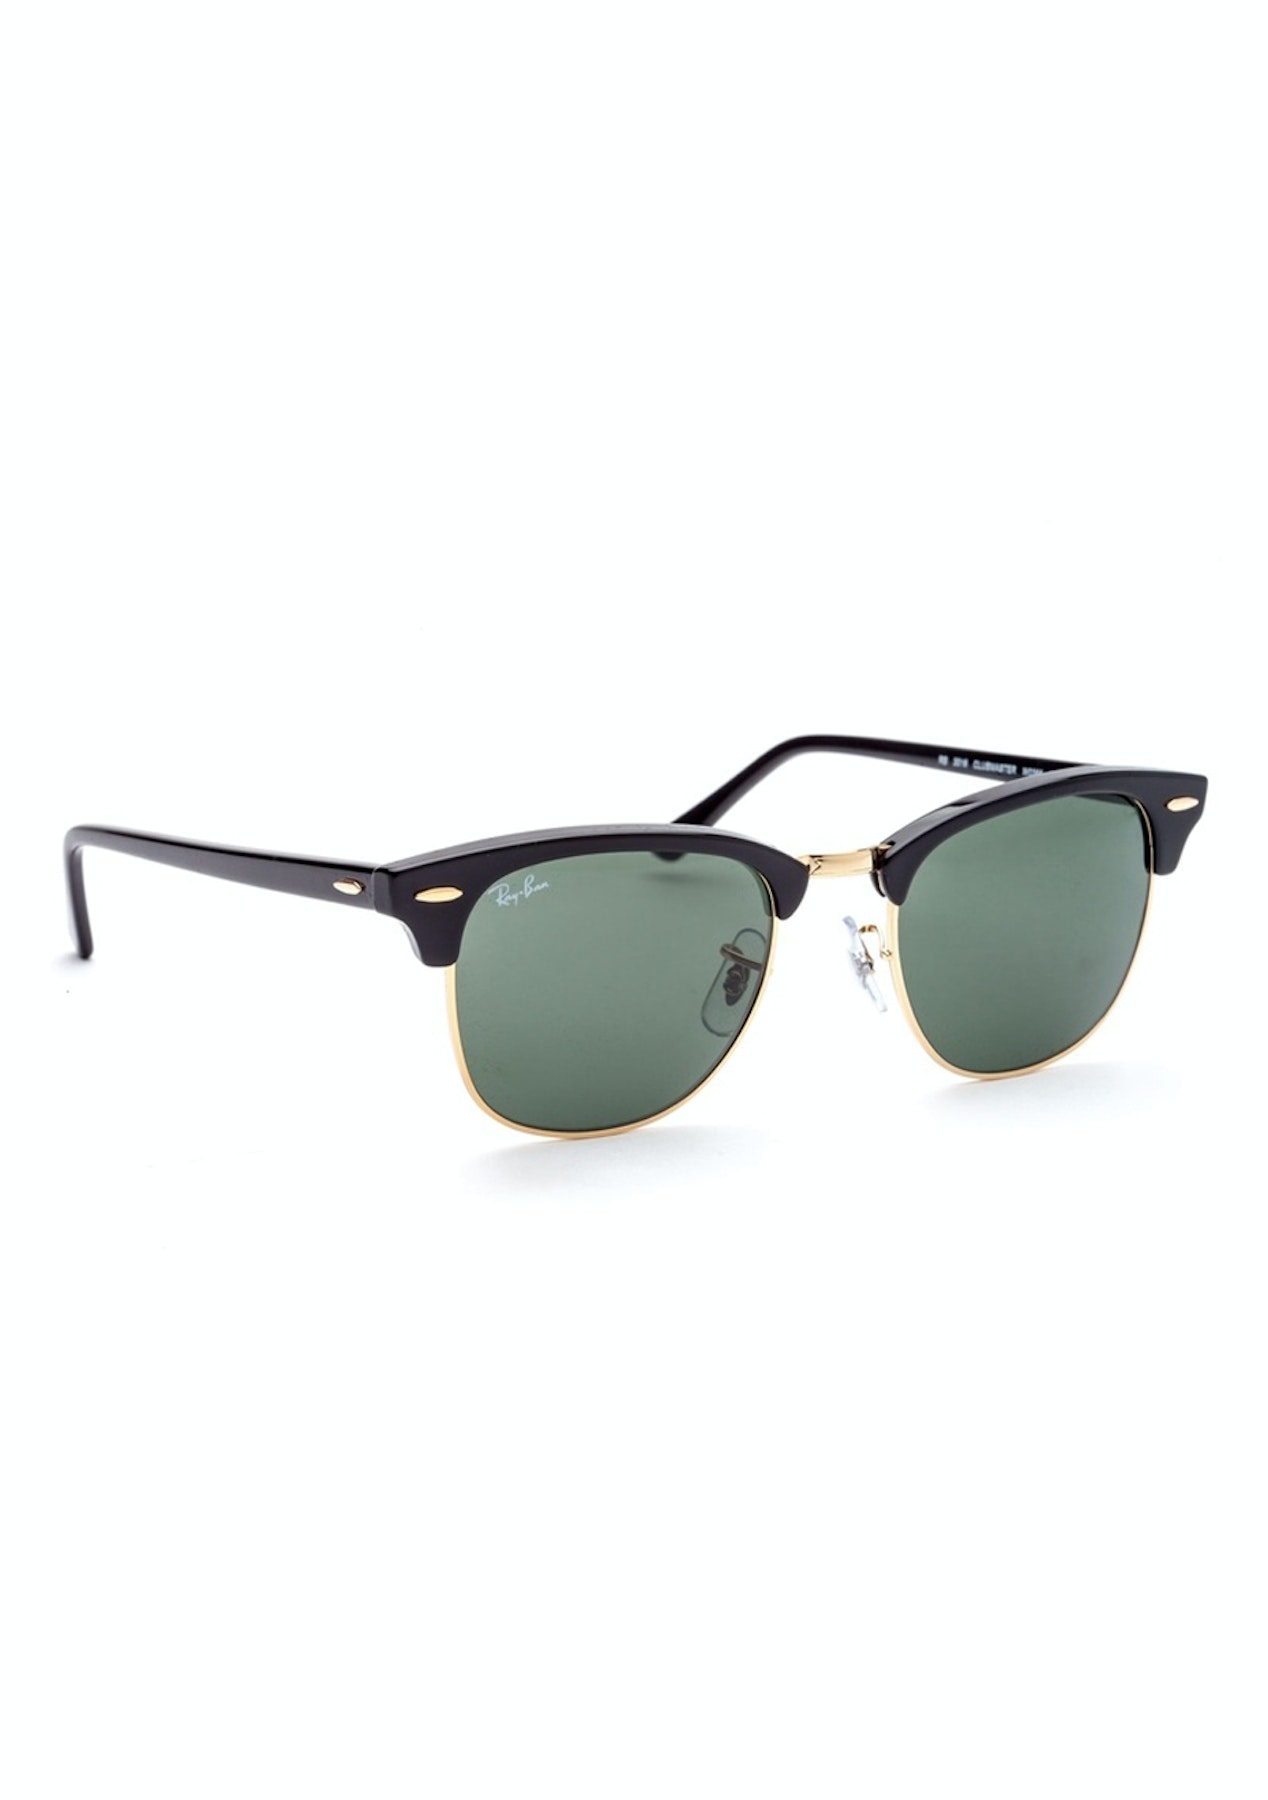 822e0ce16 Ray-Ban Clubmaster Classic Sunglasses - Ray Ban & More - Onceit